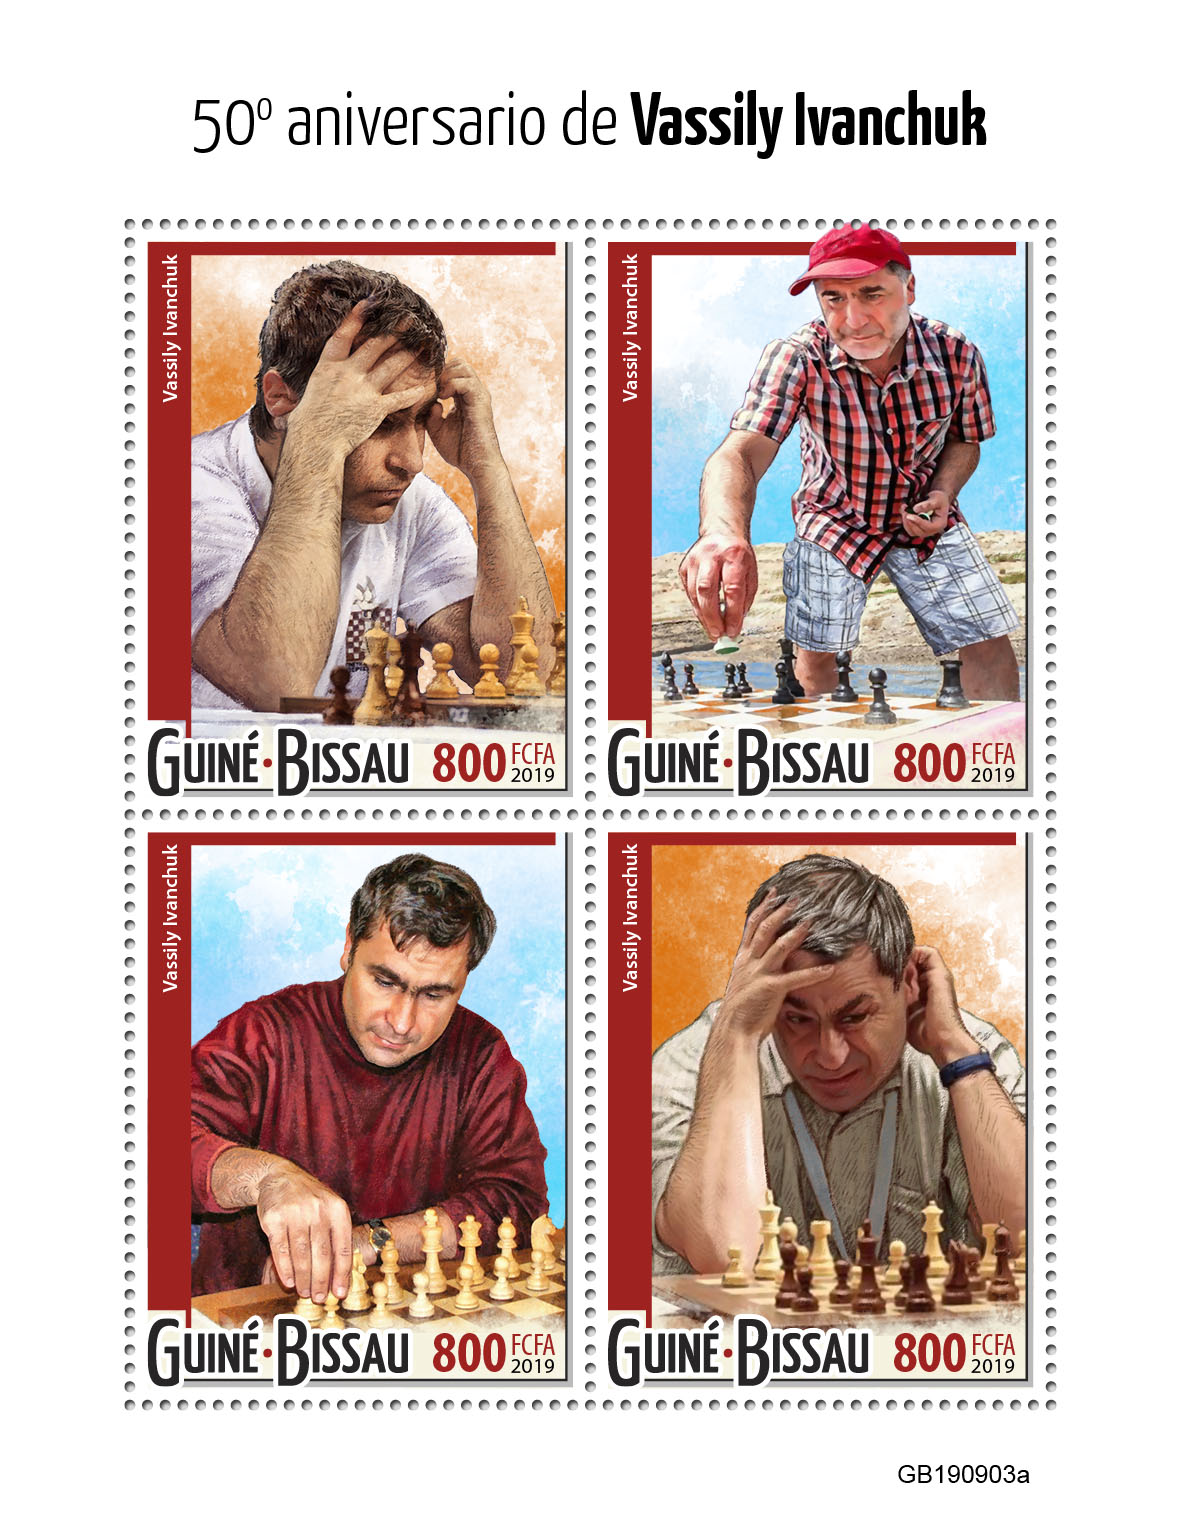 Vassily Ivanchuk - Issue of Guinée-Bissau postage stamps